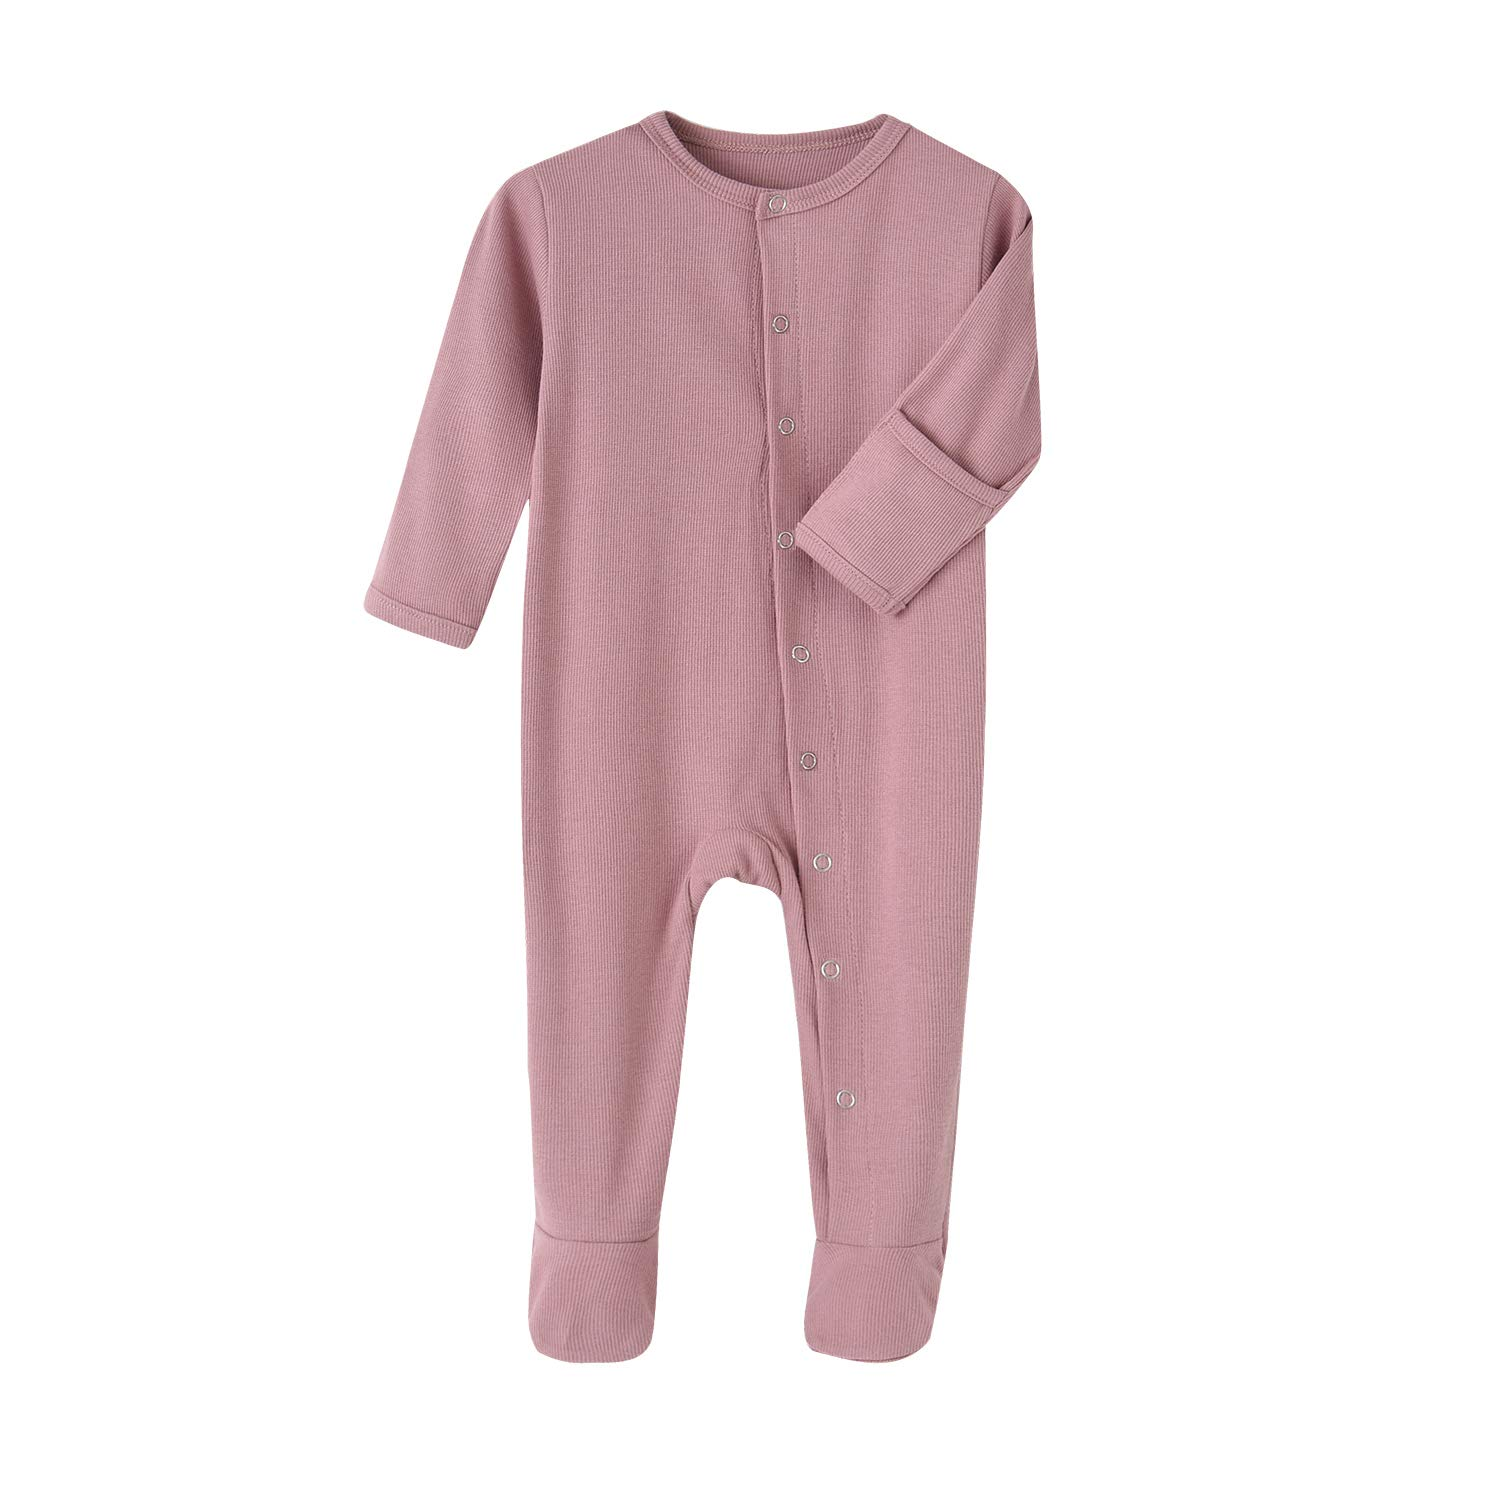 Baby Bodysuit Jumpsuit Cutest Tax Deduction Ever Pajamas One-Piece Rompers